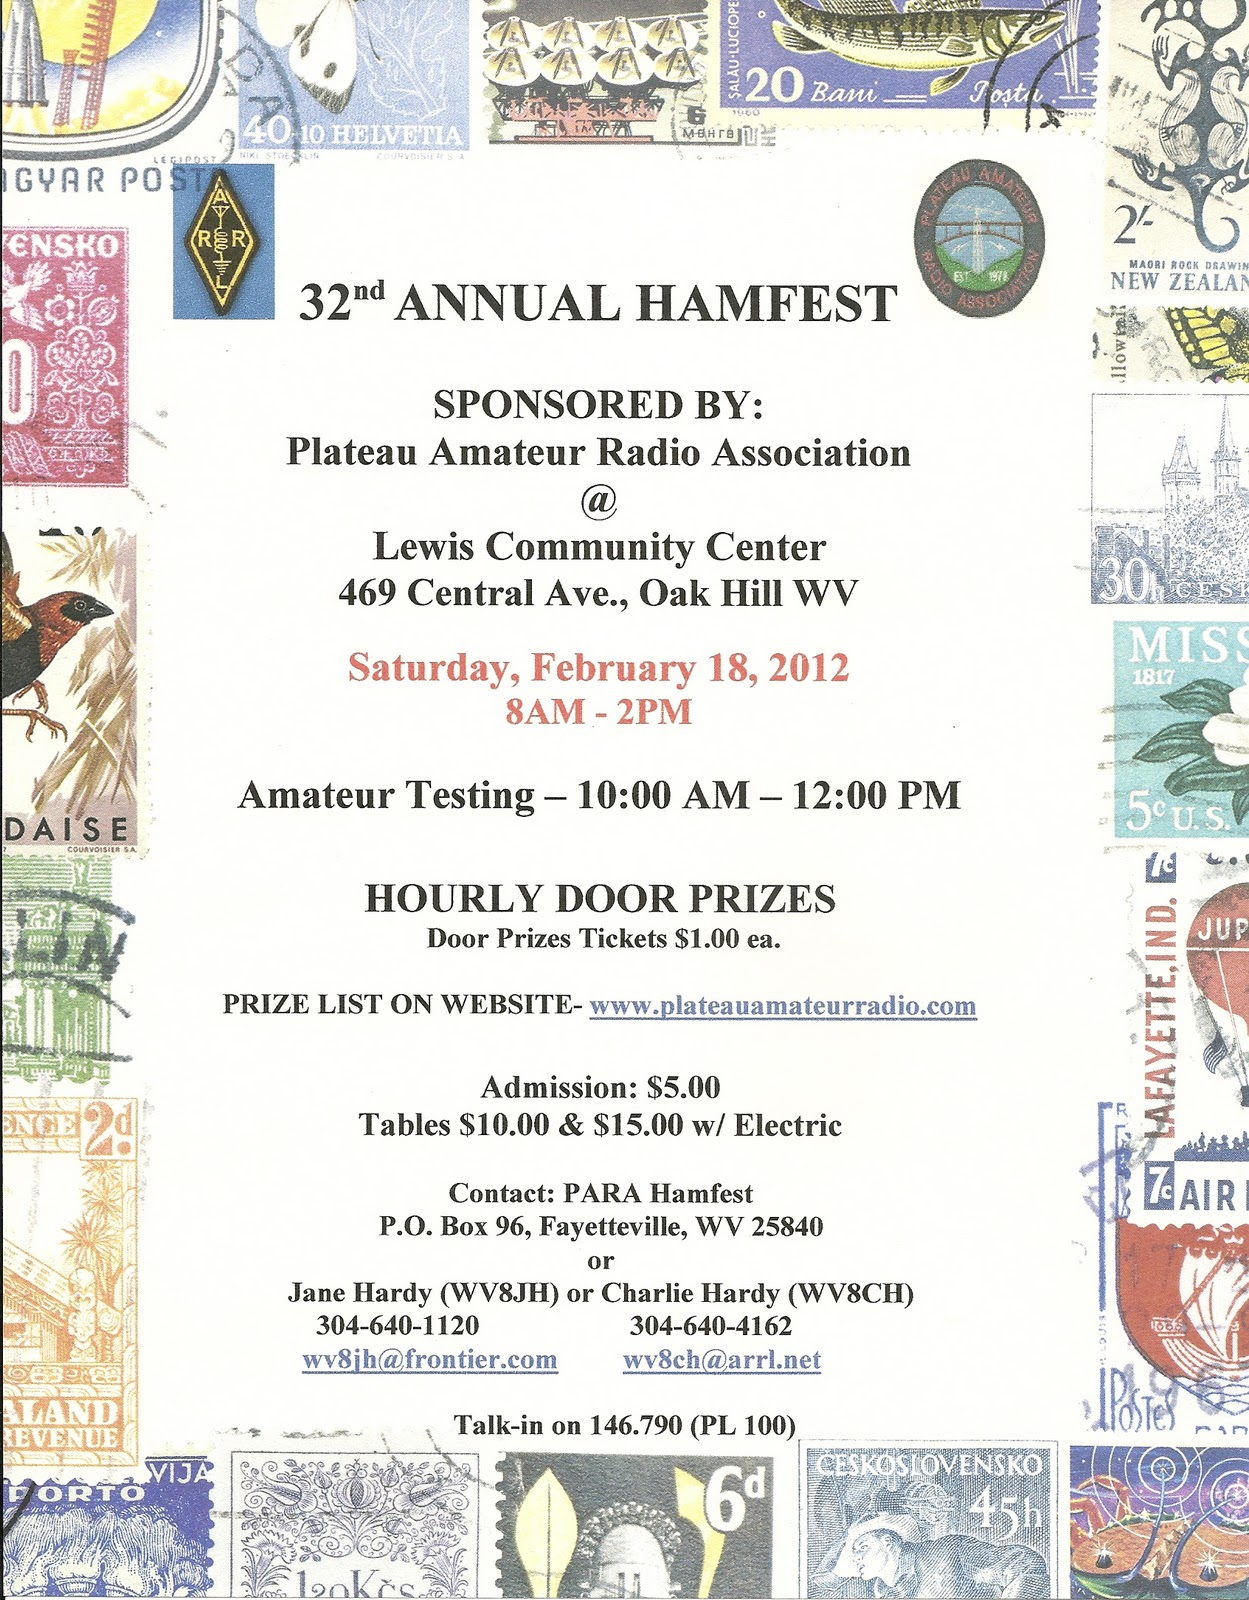 plateau-amateur-radio-association-hamfest-flyer.jpg